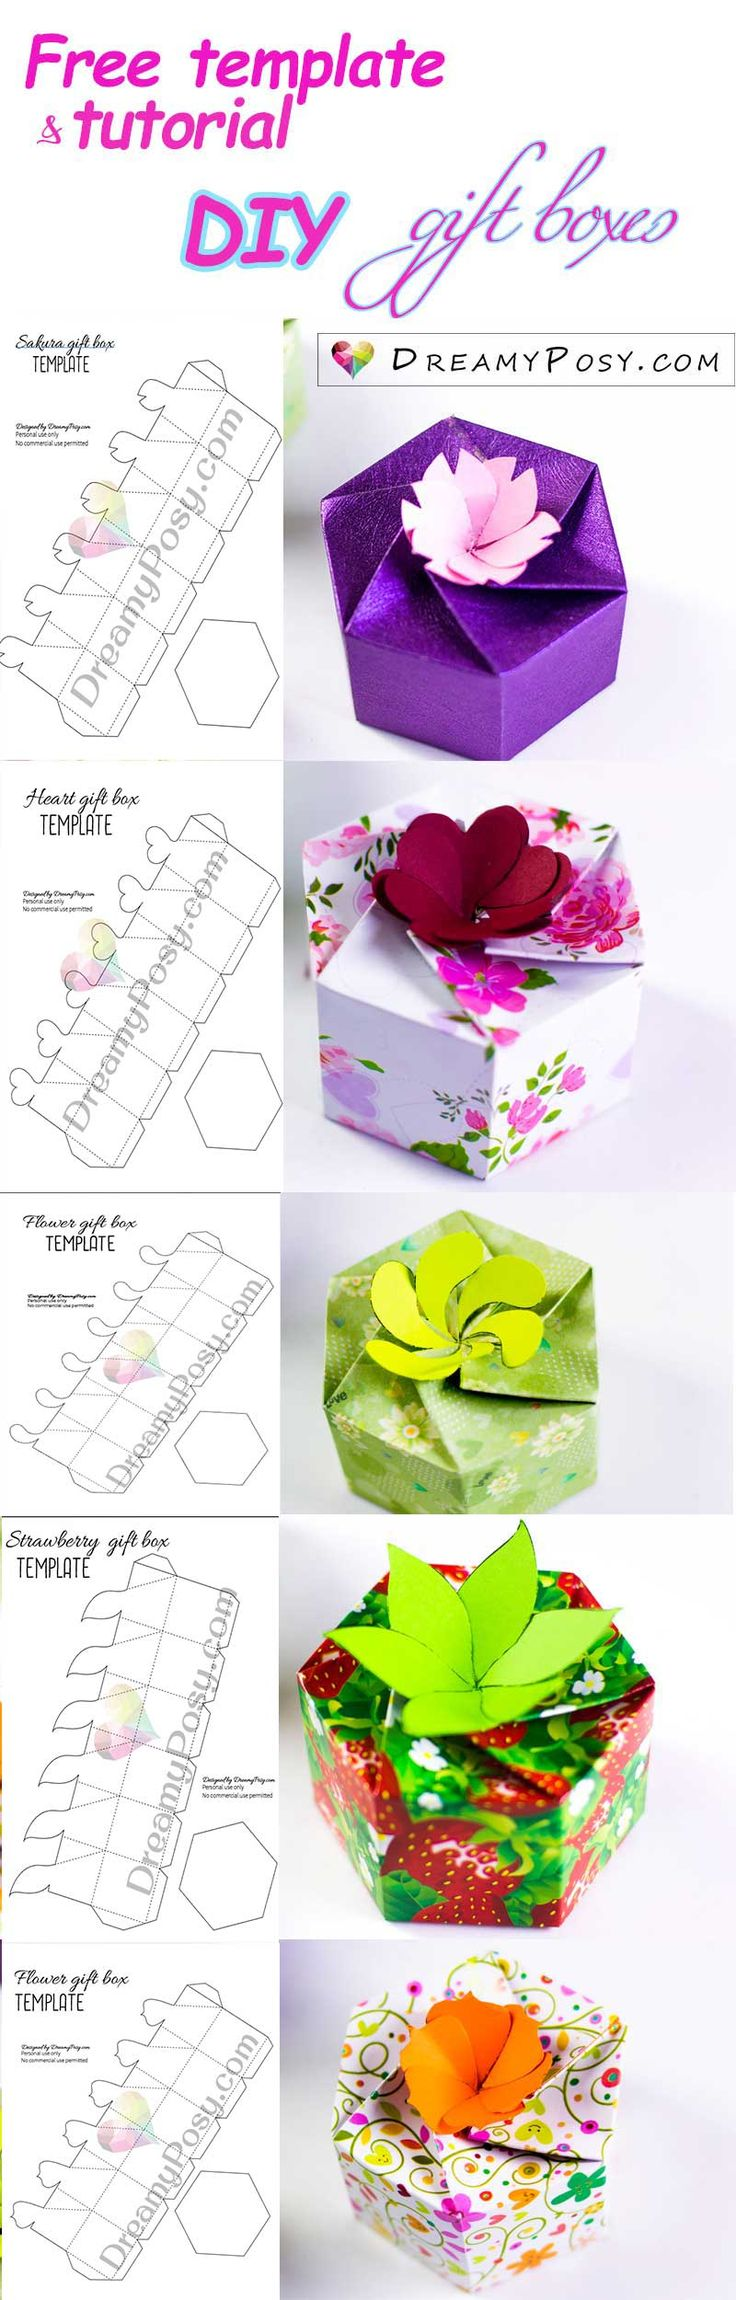 Personalized gift boxes #freetemplate #giftbox #diygiftbox